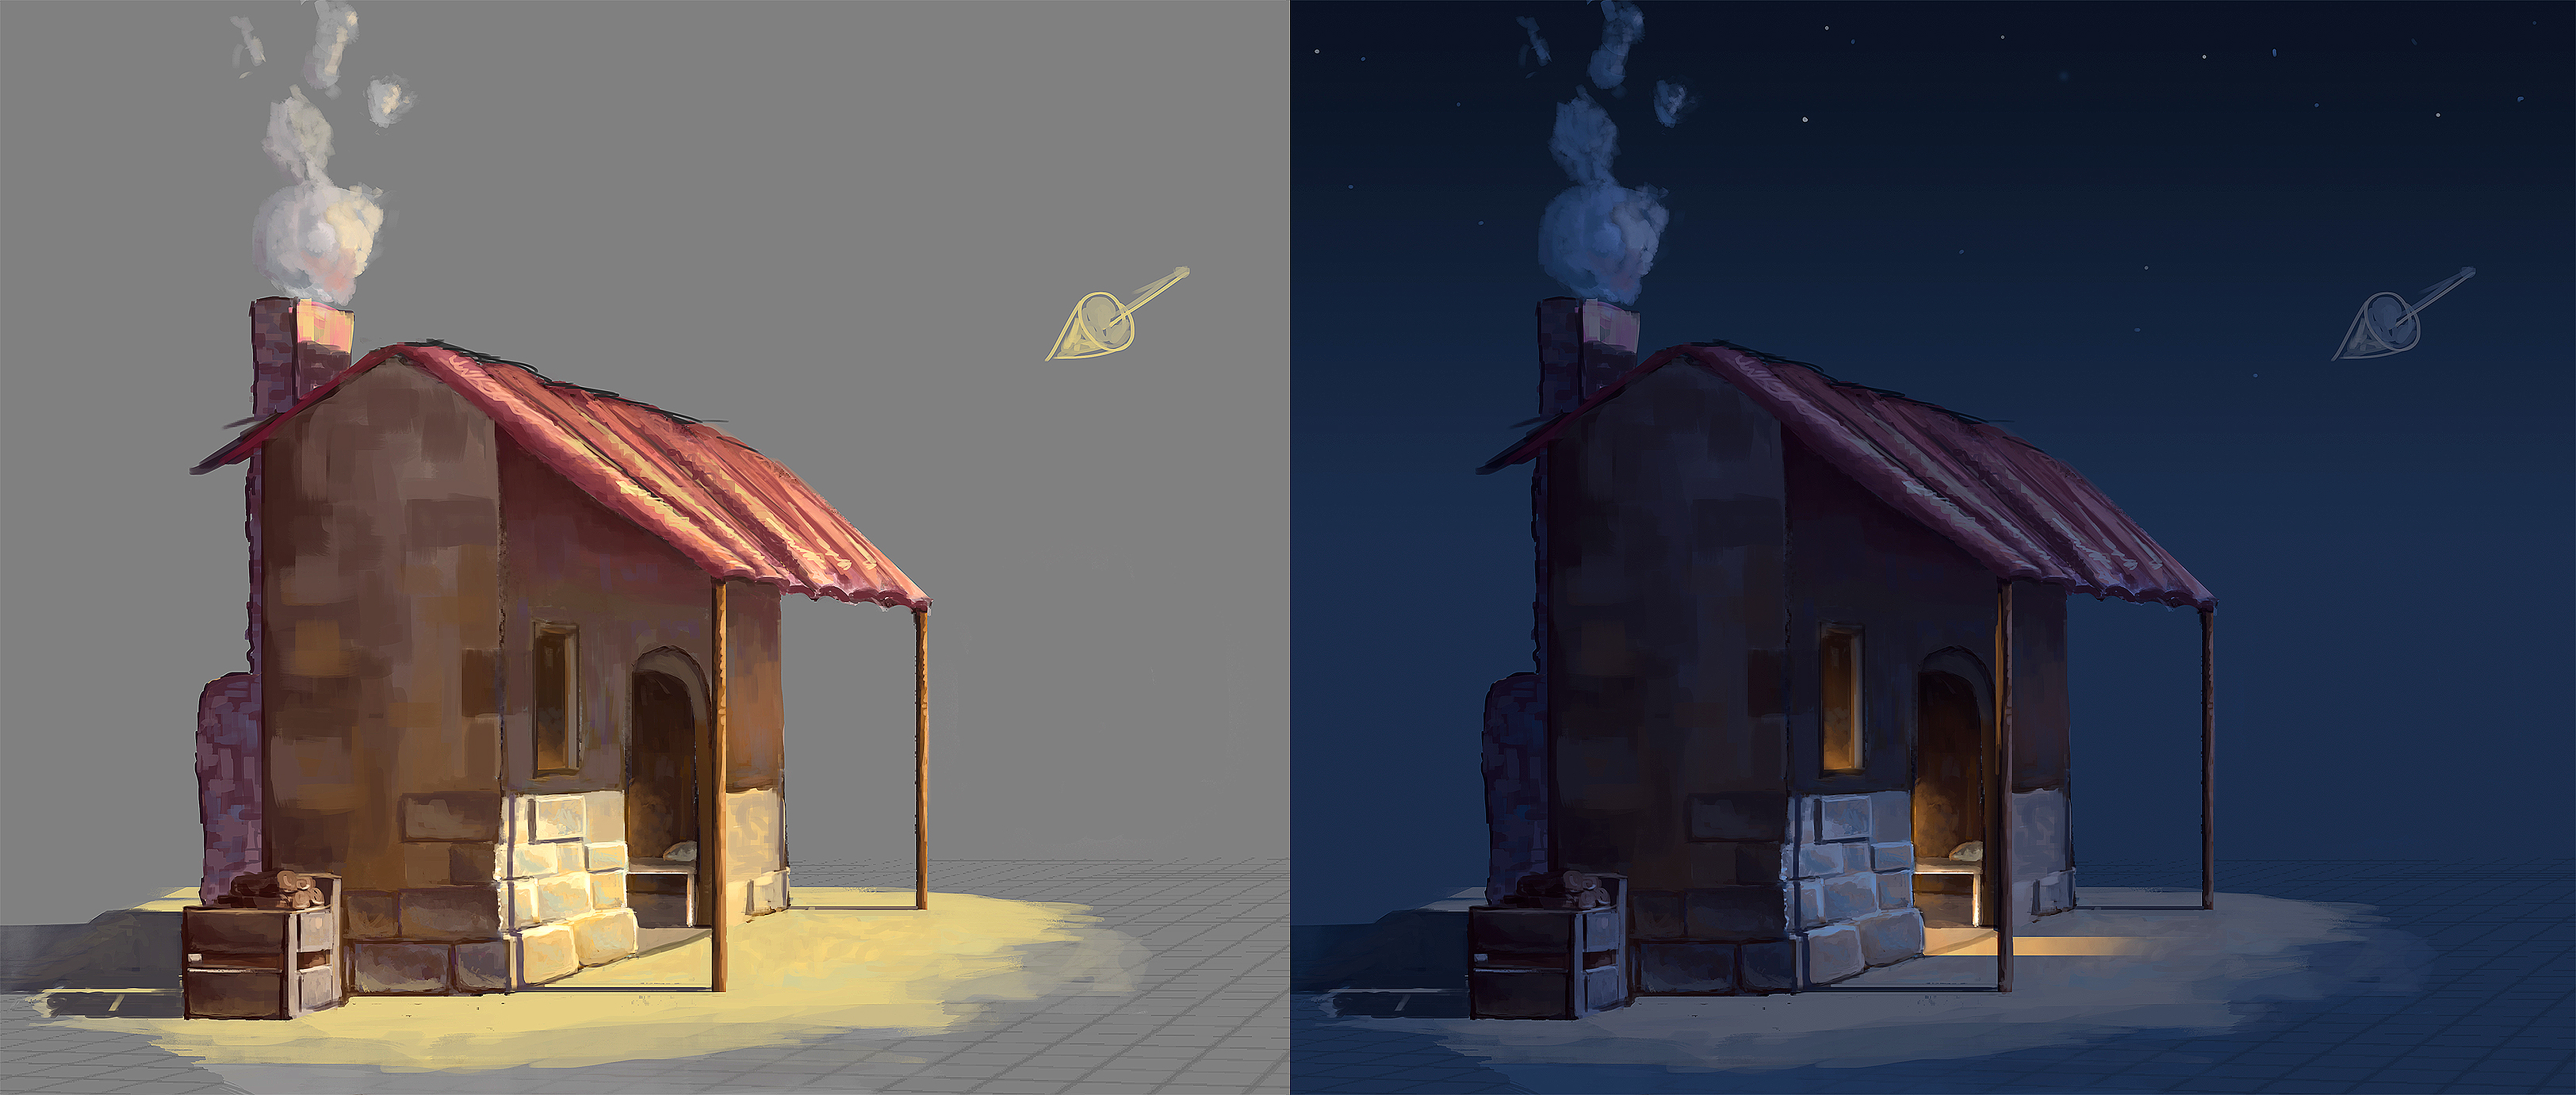 Tiny Peasant House - Concept - Day and night